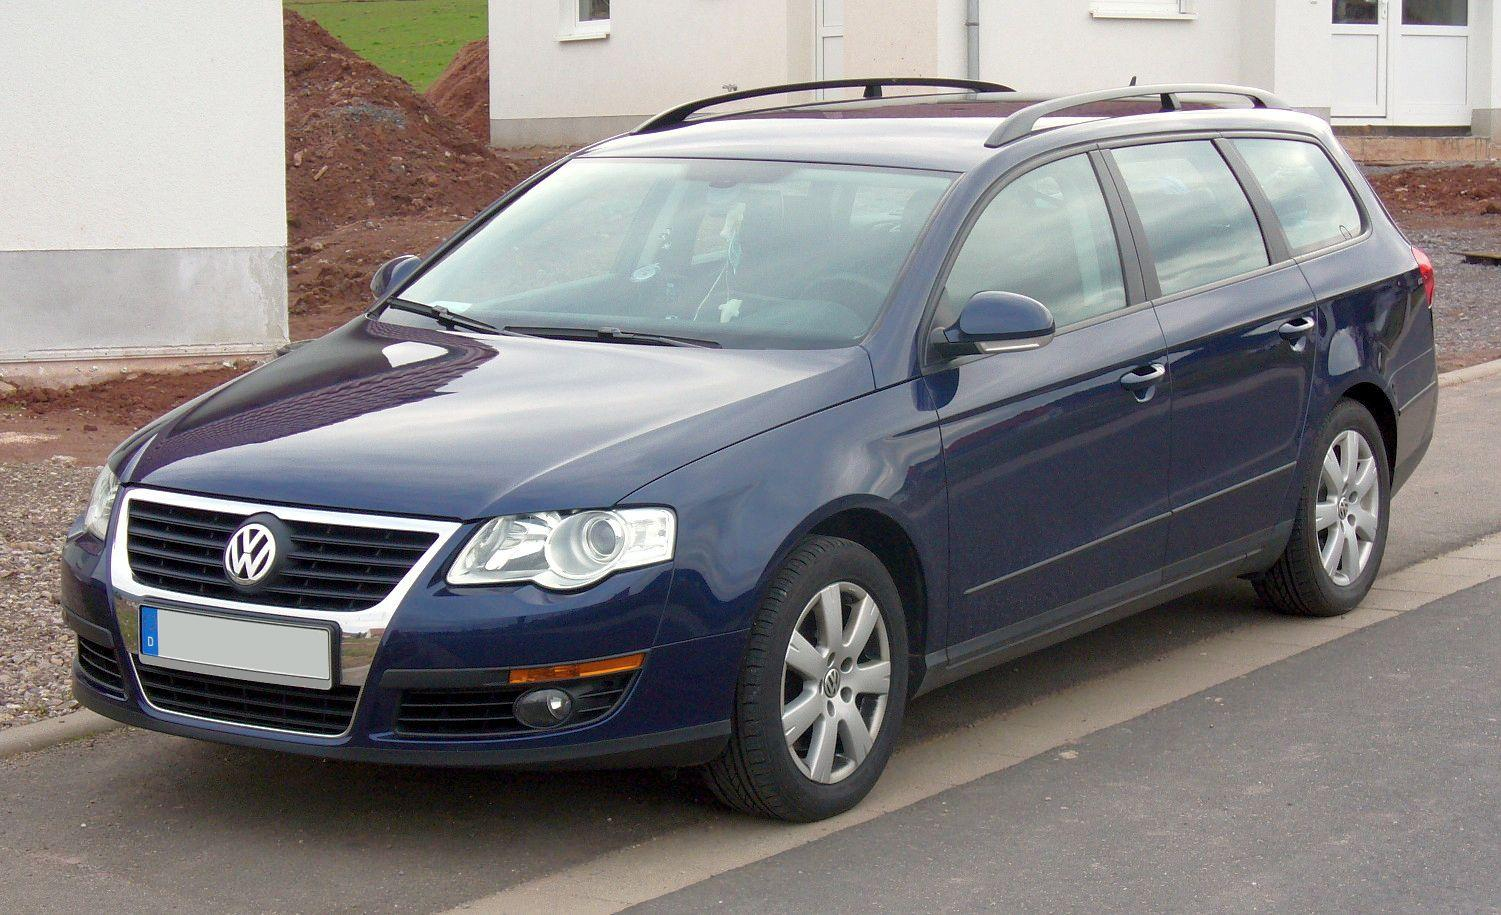 ofbyld vw passat b6 variant trendline jpg wikipedy. Black Bedroom Furniture Sets. Home Design Ideas